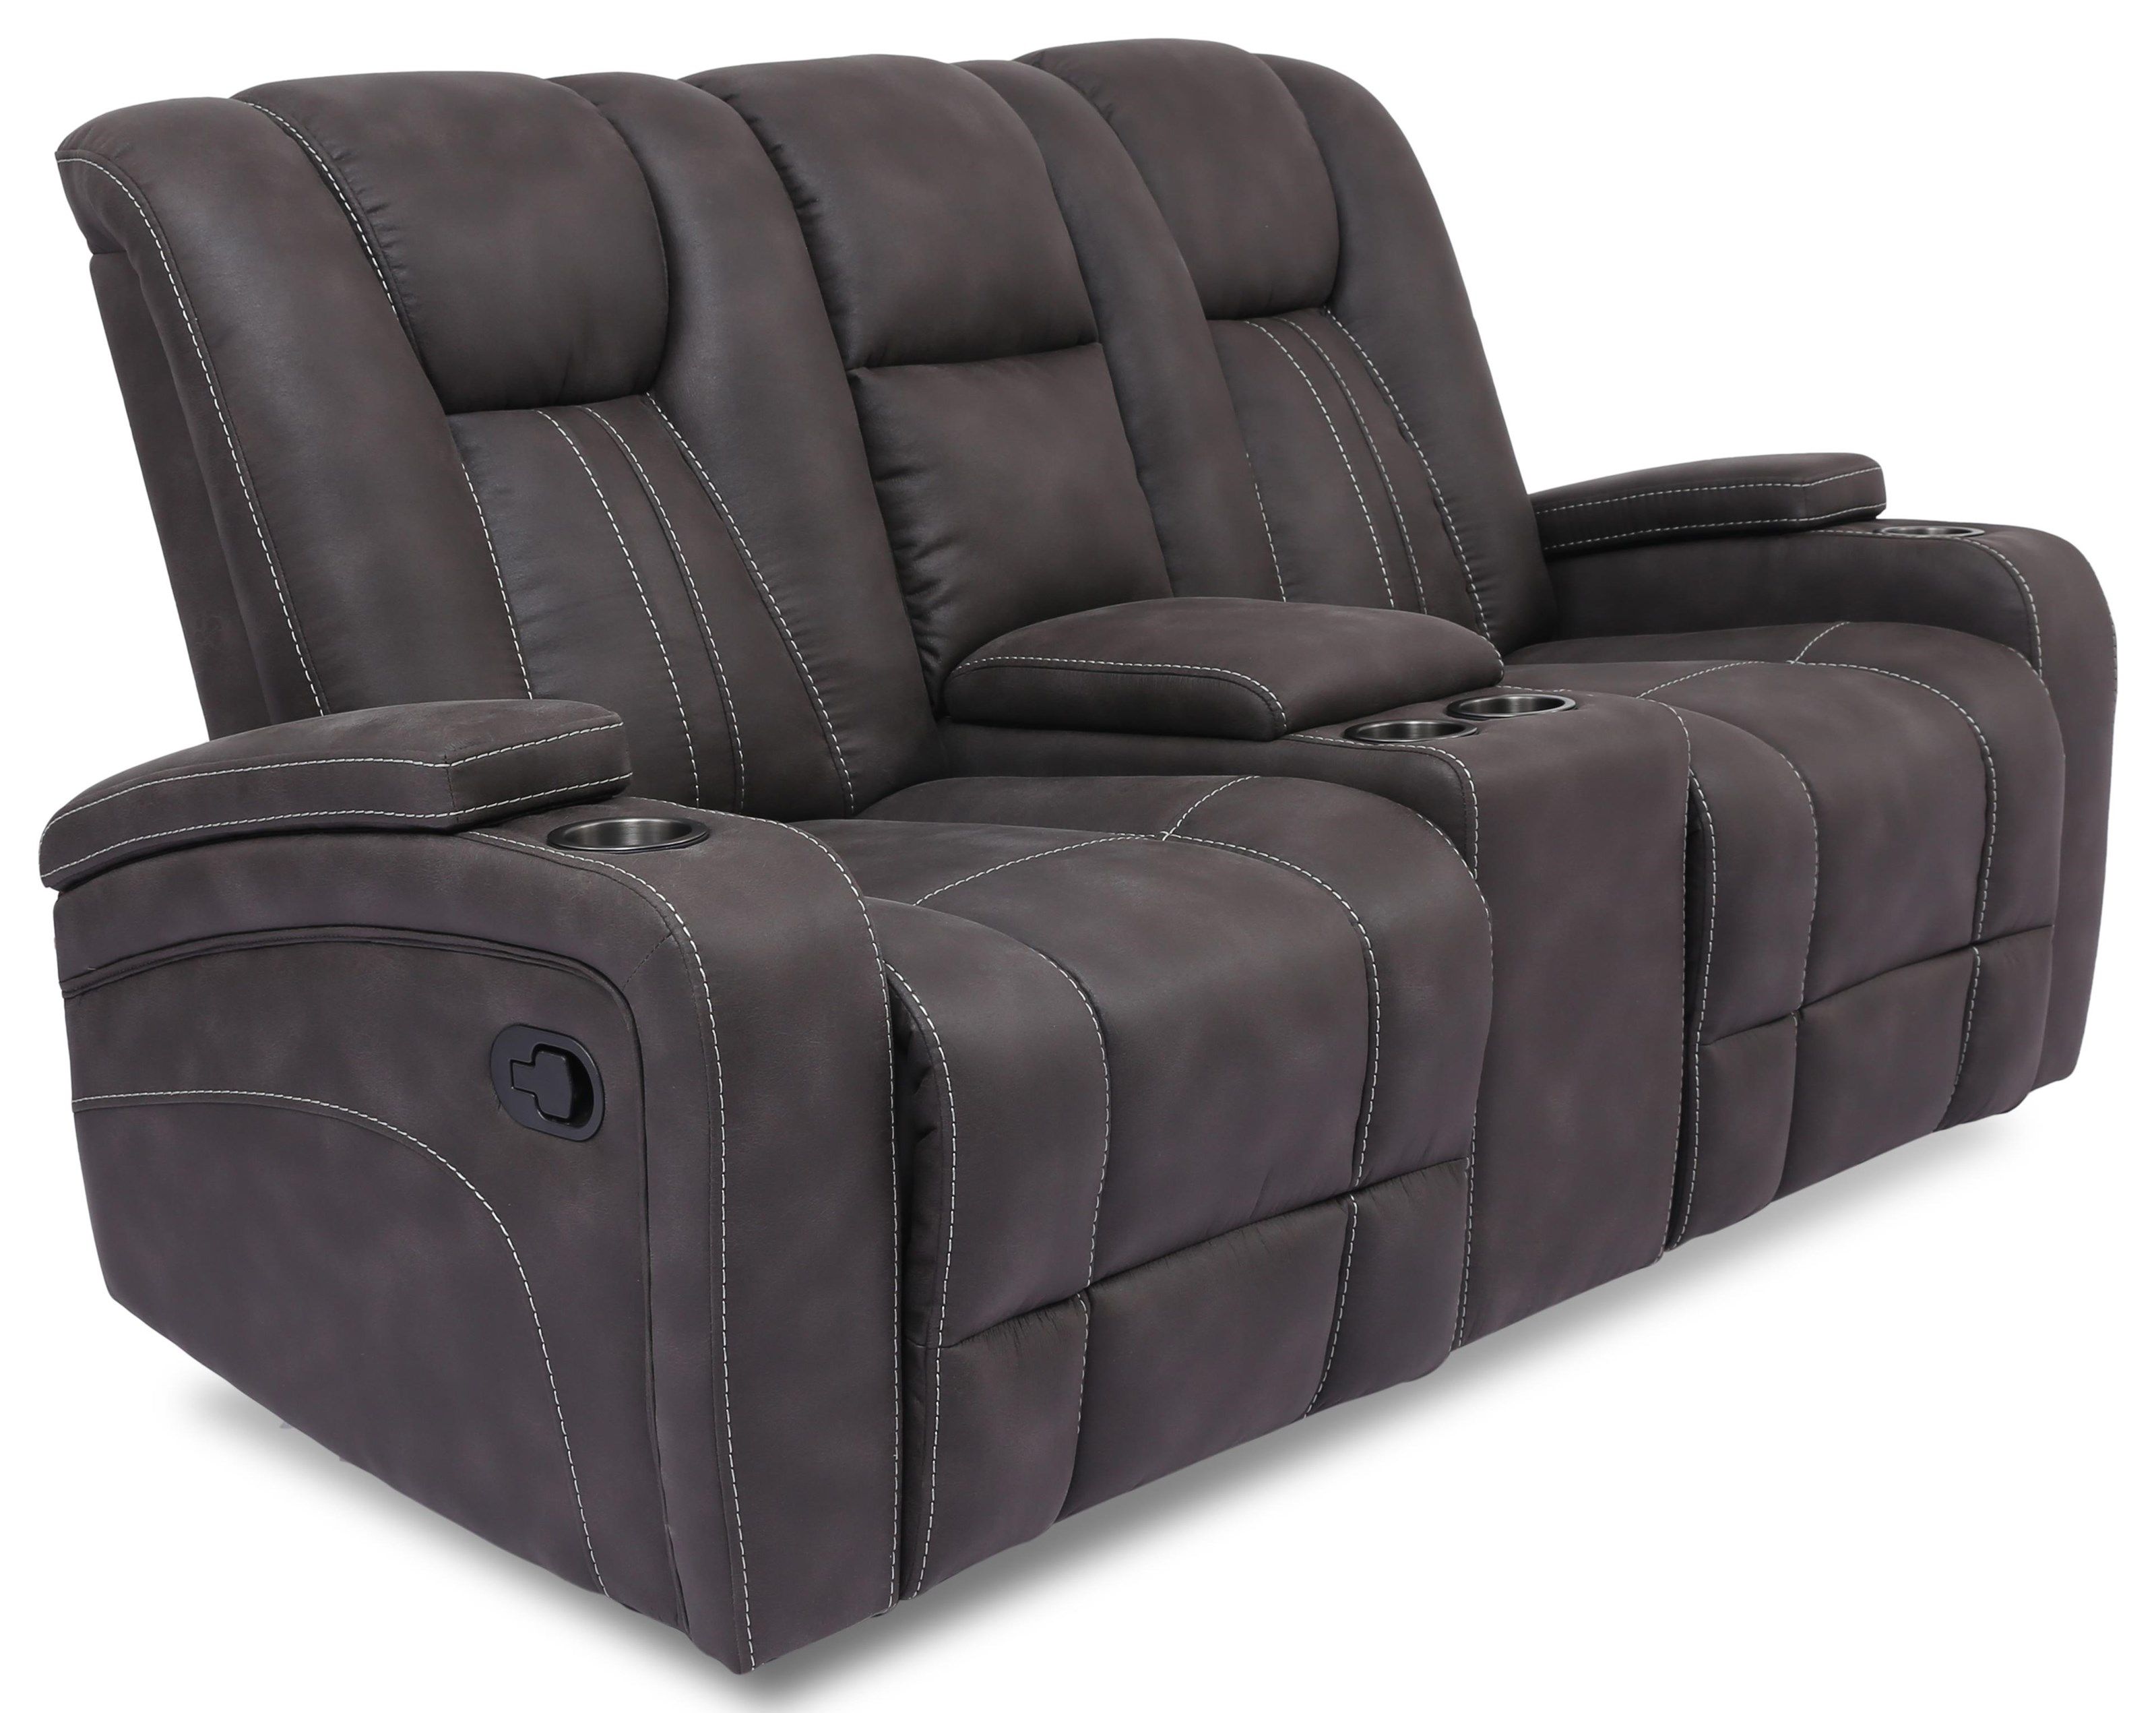 9990M Glider Reclining Loveseat with Console by Cheers at Furniture Fair - North Carolina